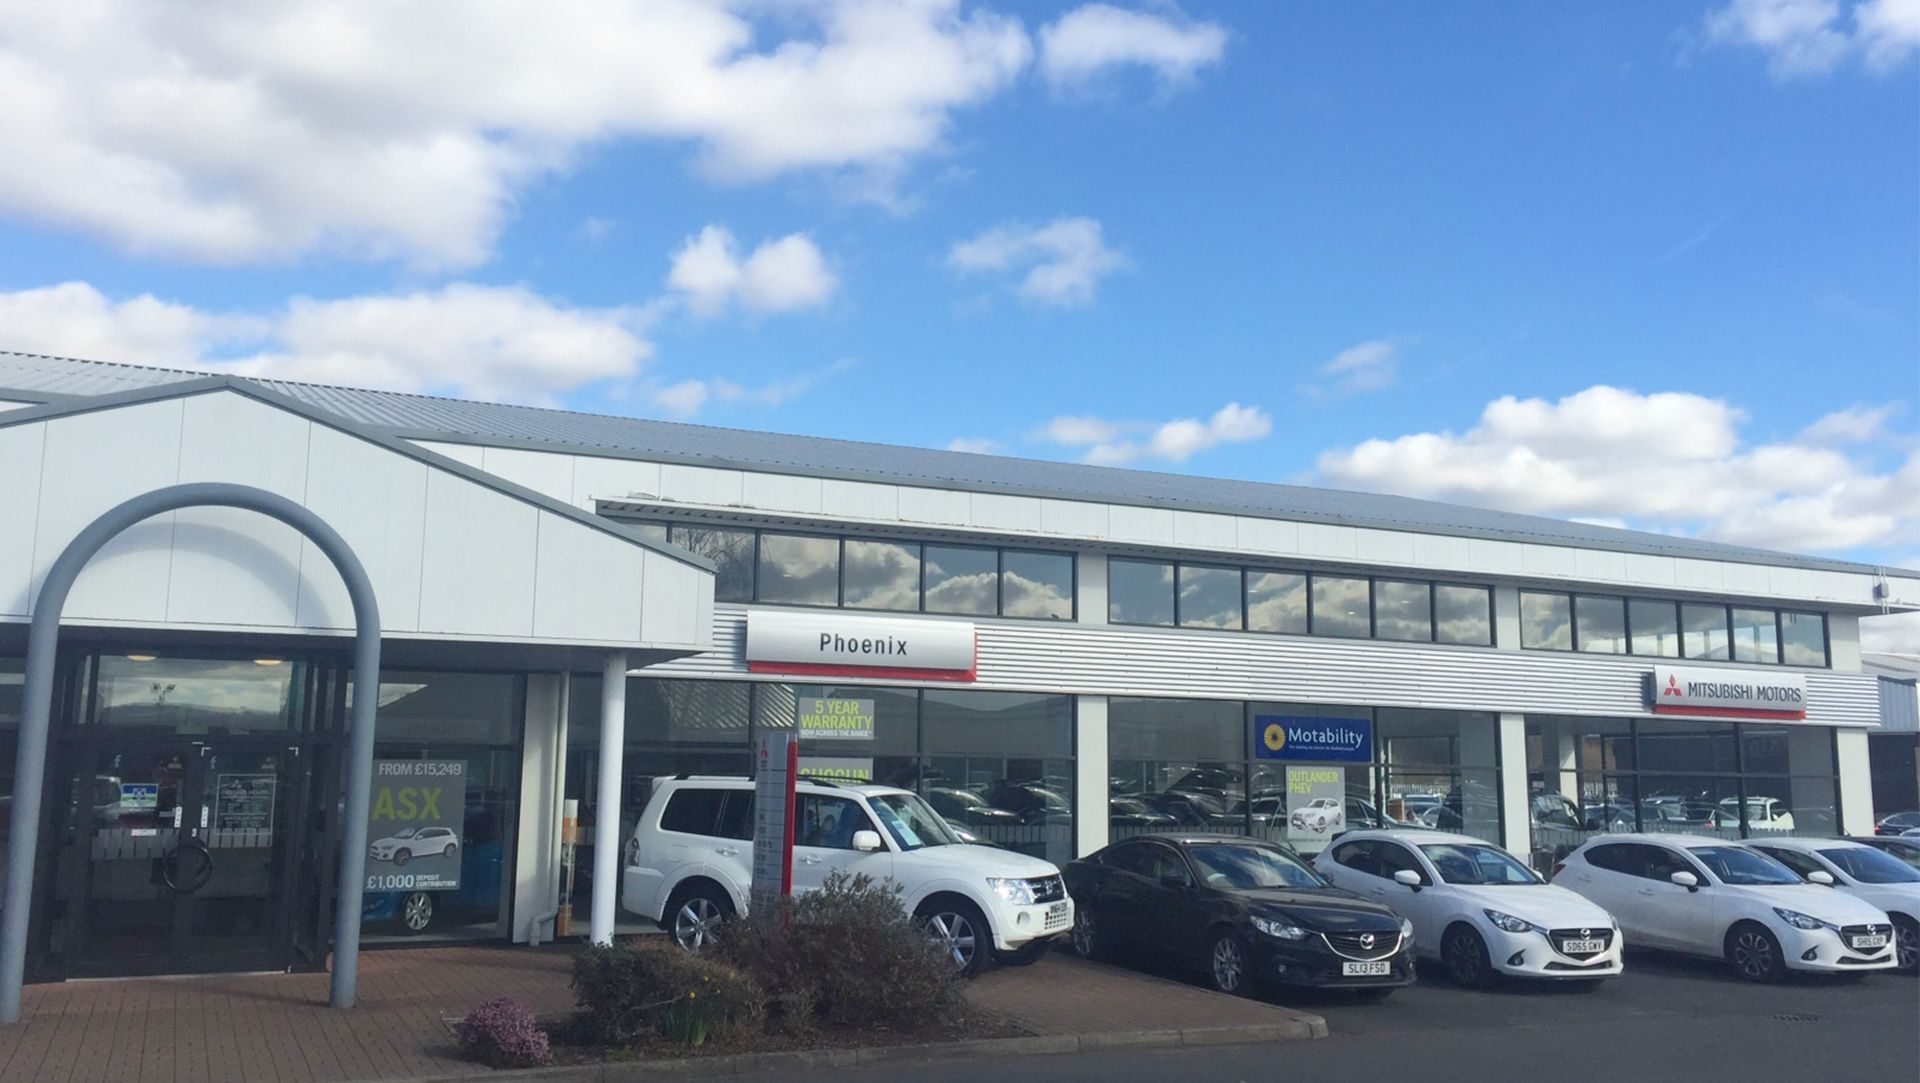 Mitsubishi Dealership Invests In More Charging Points To Support - Mitsubishi dealer ship